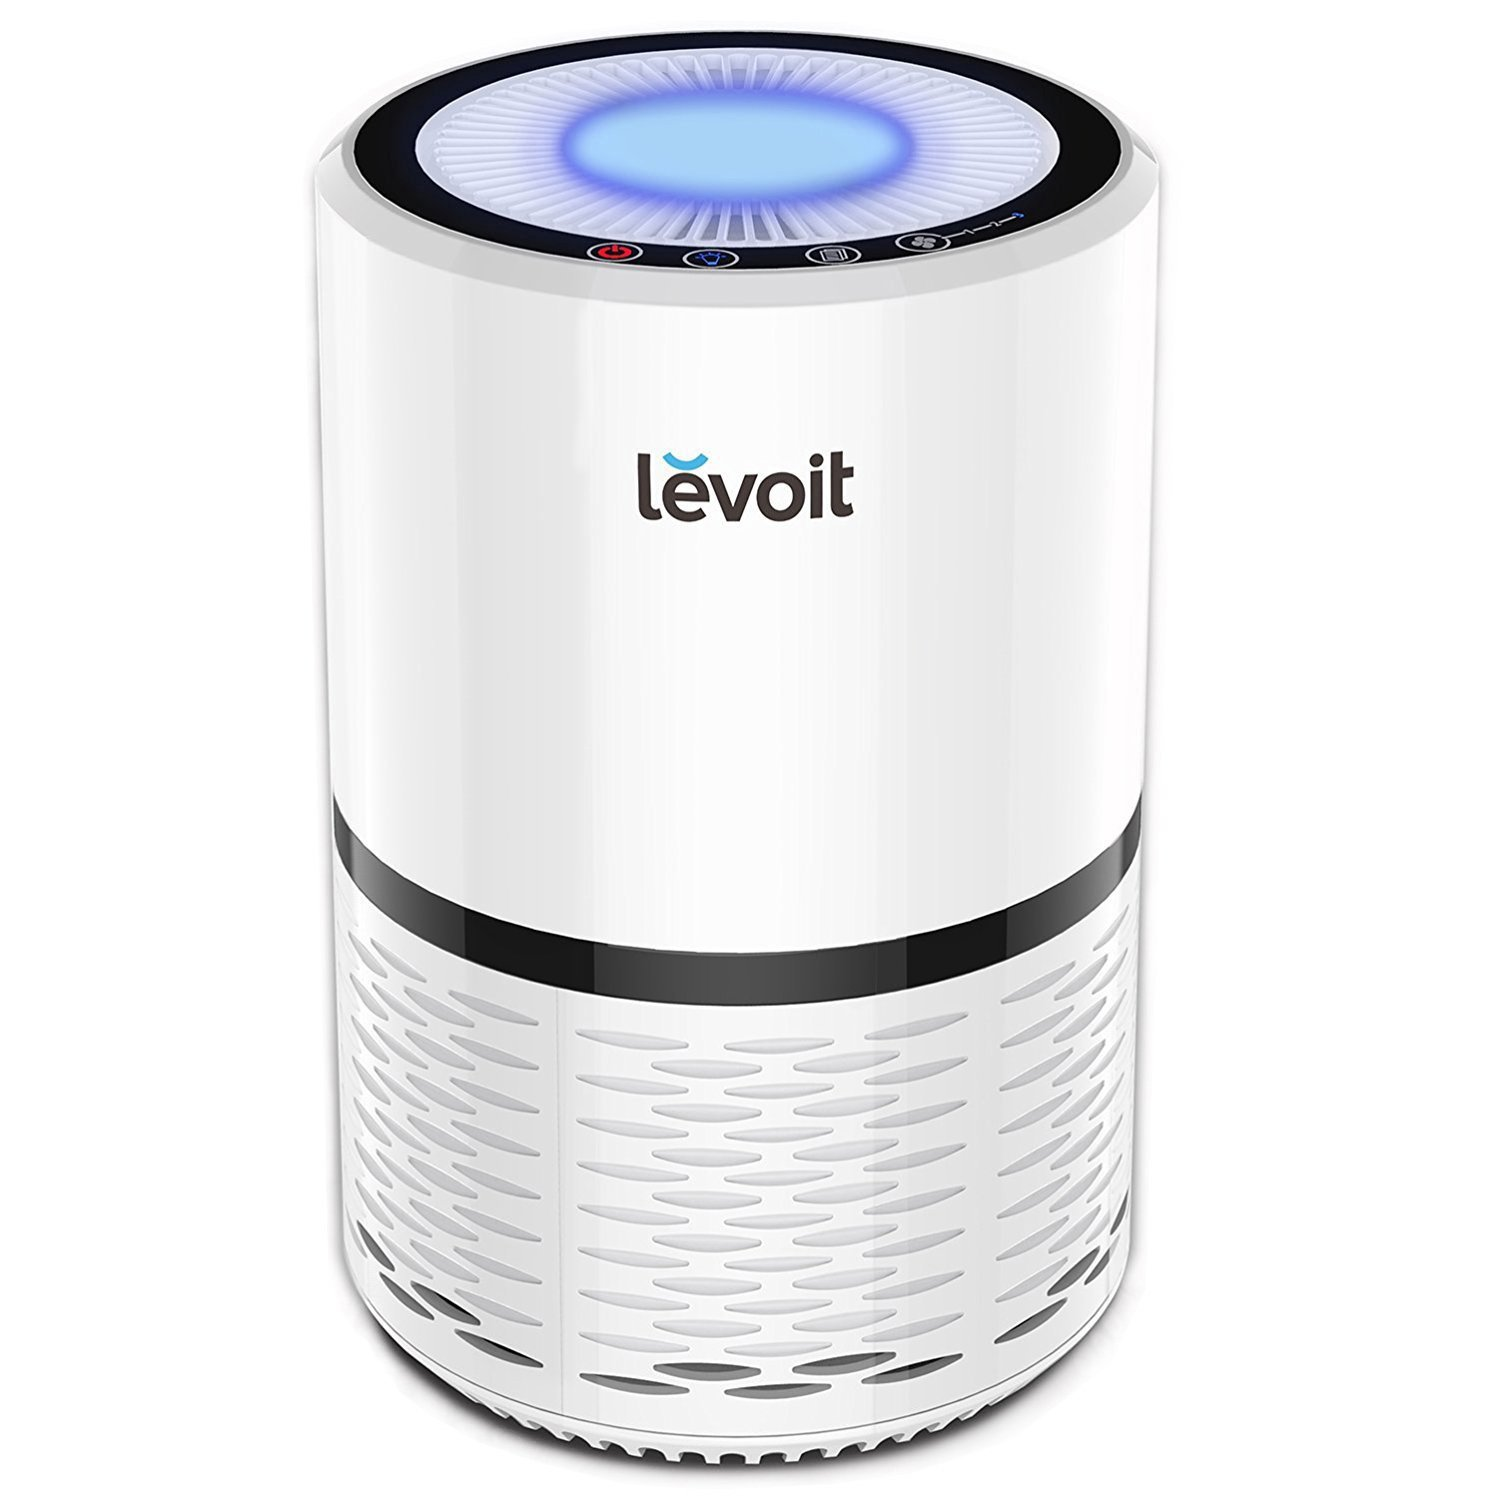 Levoit Compact Air Purifier - things to consider before buying an air purifier - topratedhomeproducts